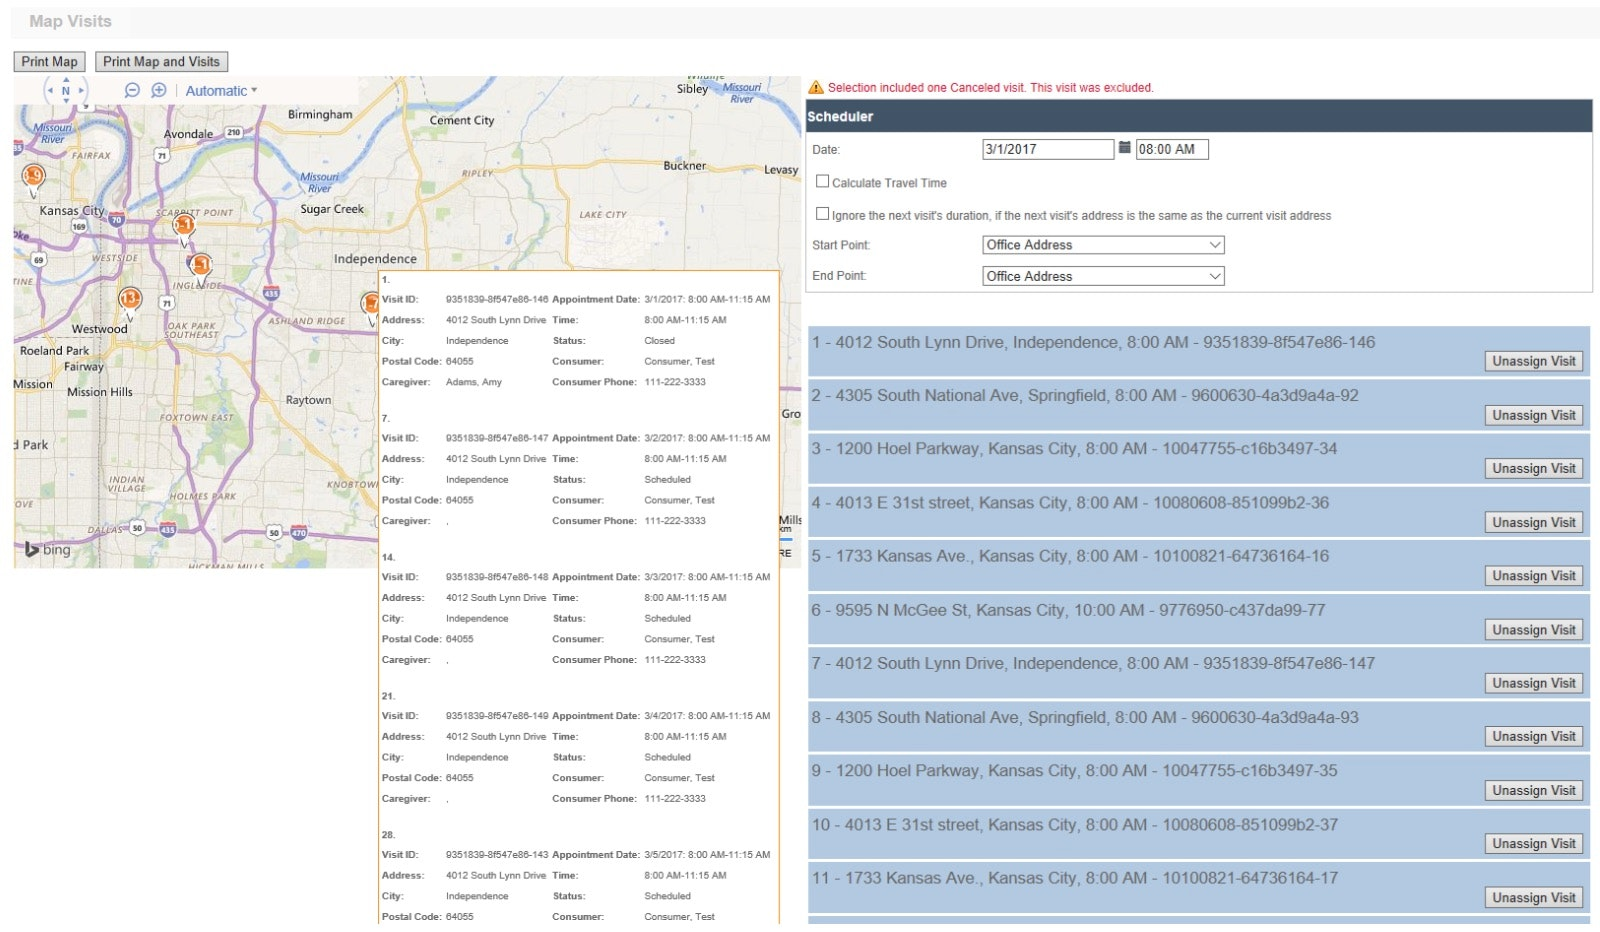 Scheduling with Interactive Map